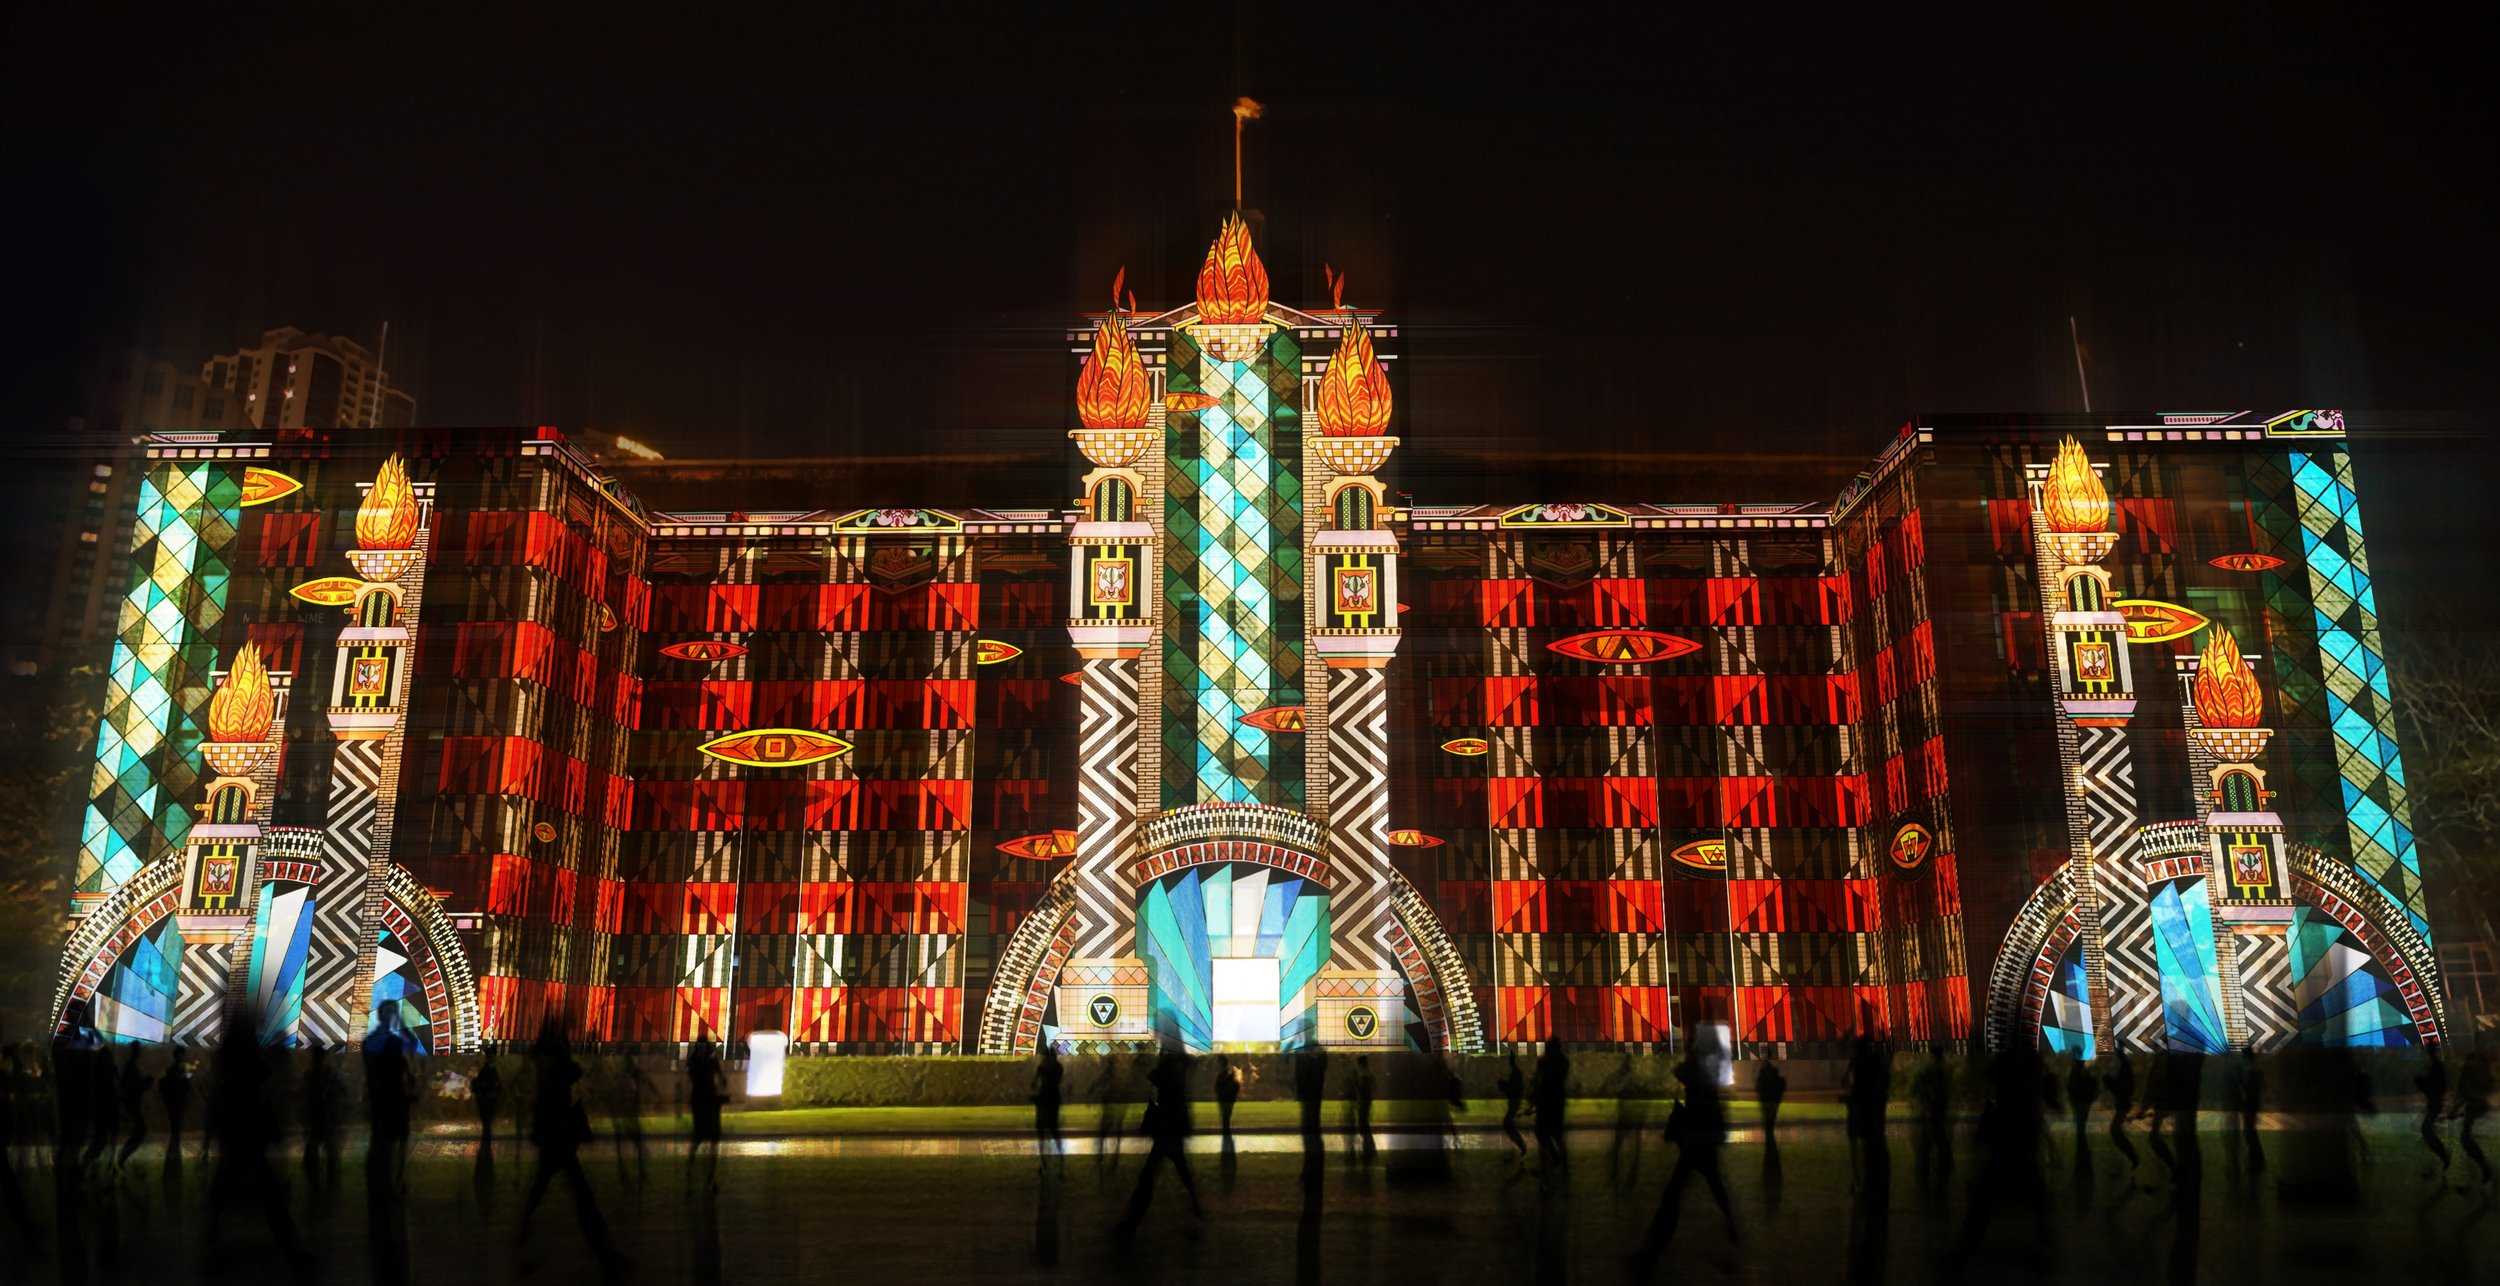 Gamma World (projection mapping video), 2014